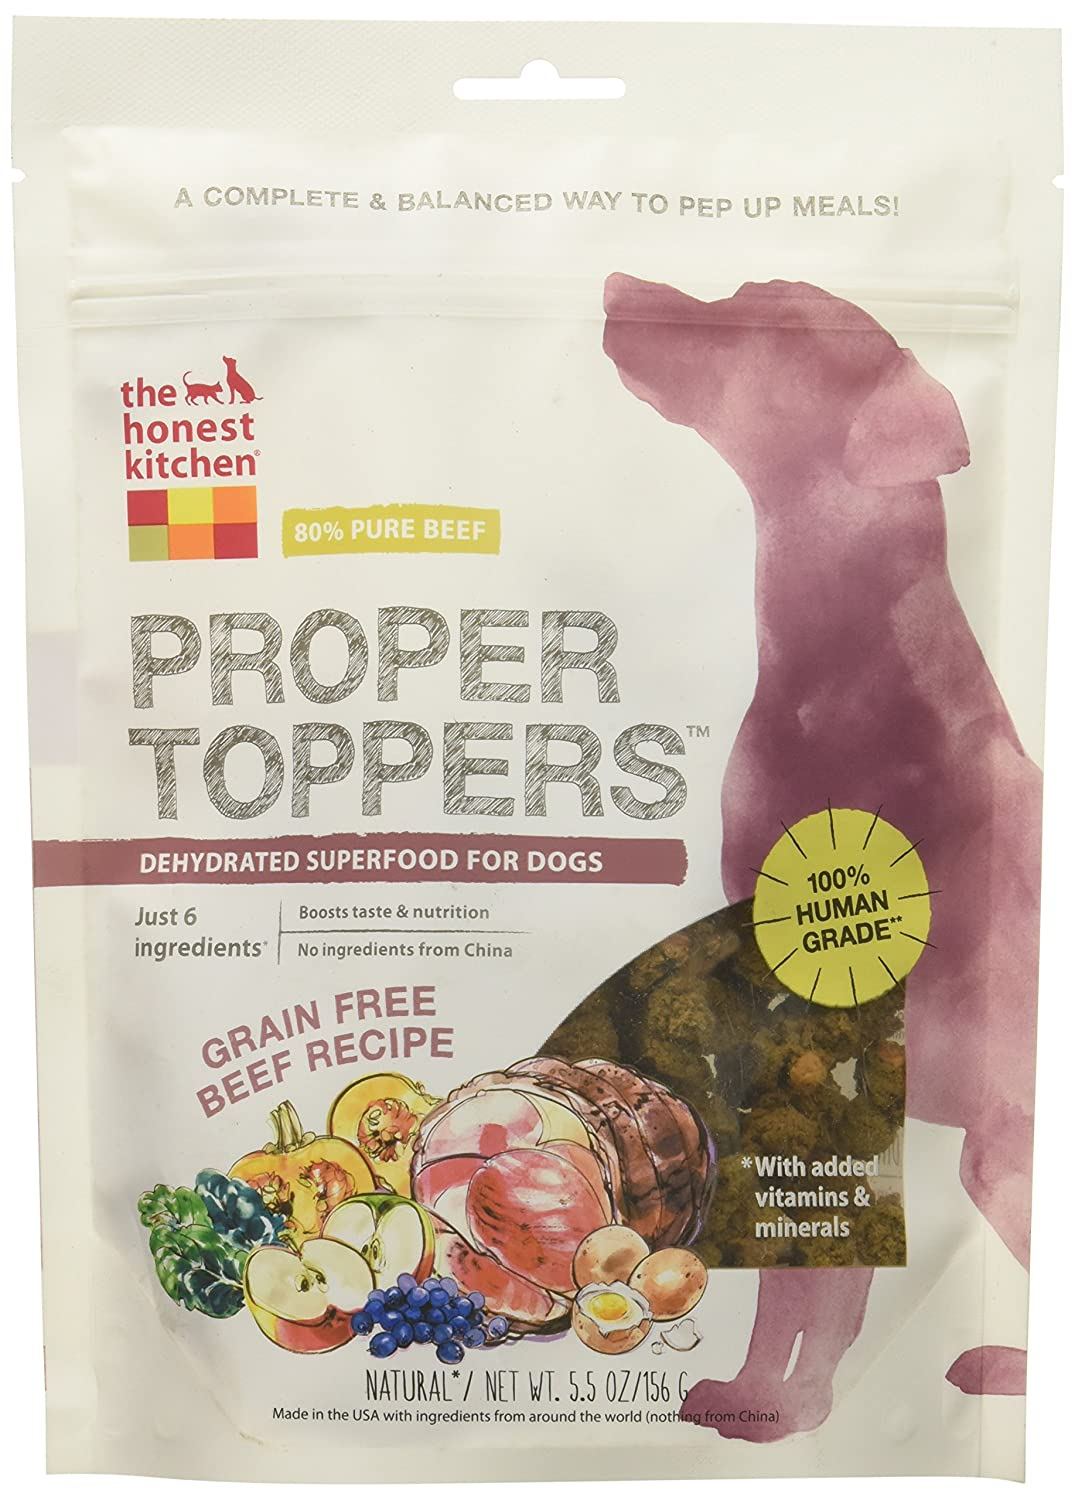 Honest Kitchen The Proper Toppers: Natural Human Grade Dehydrated Dog  Superfoods, Grain Free Beef 5.5 Oz: Pet Supplies: Amazon.com